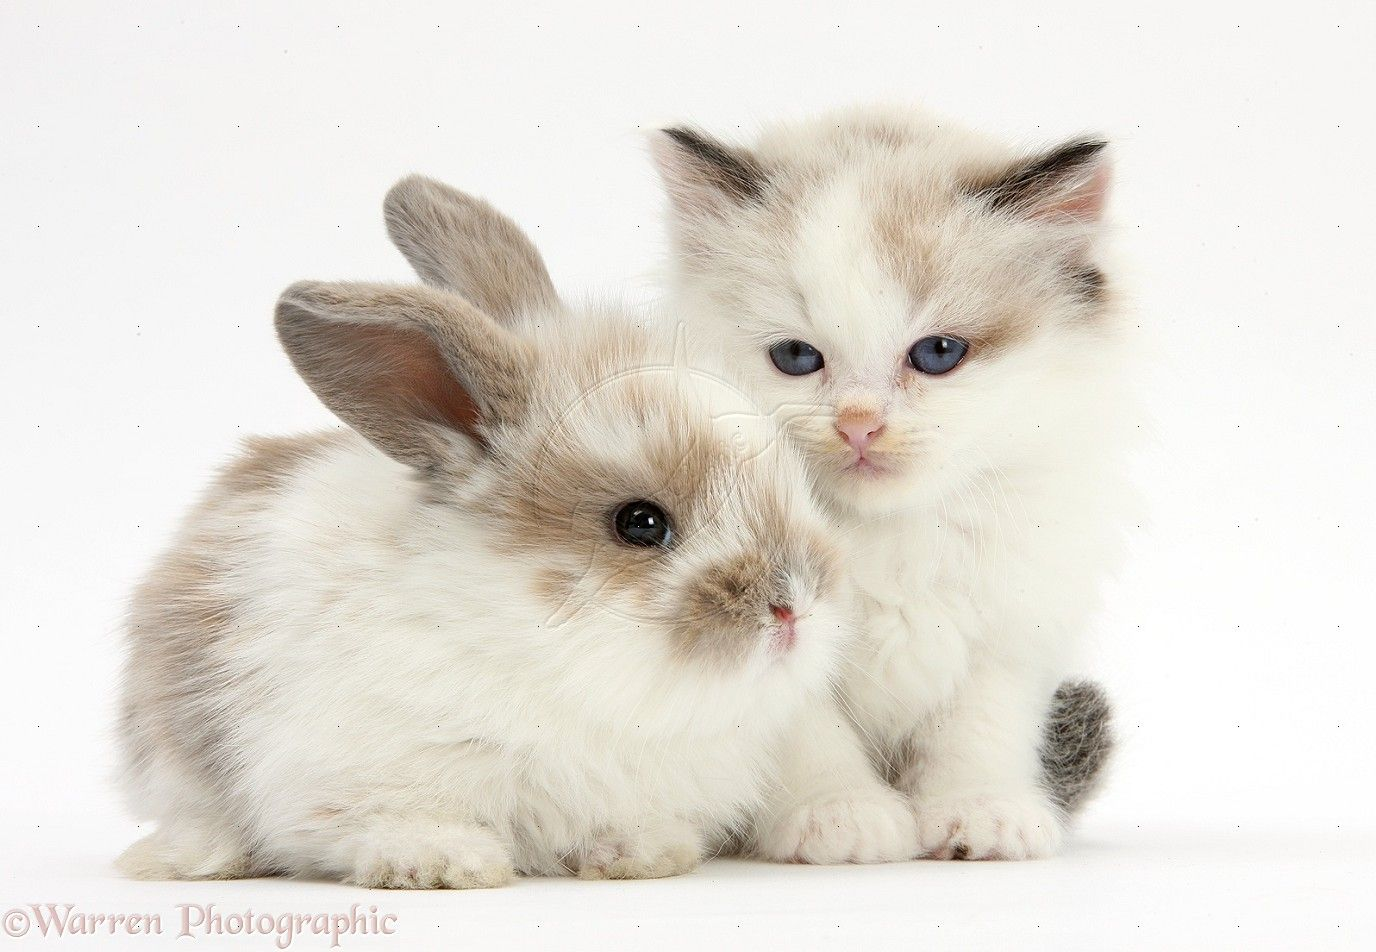 cute rabbit and kitten - Google Search | Cute Animals ...